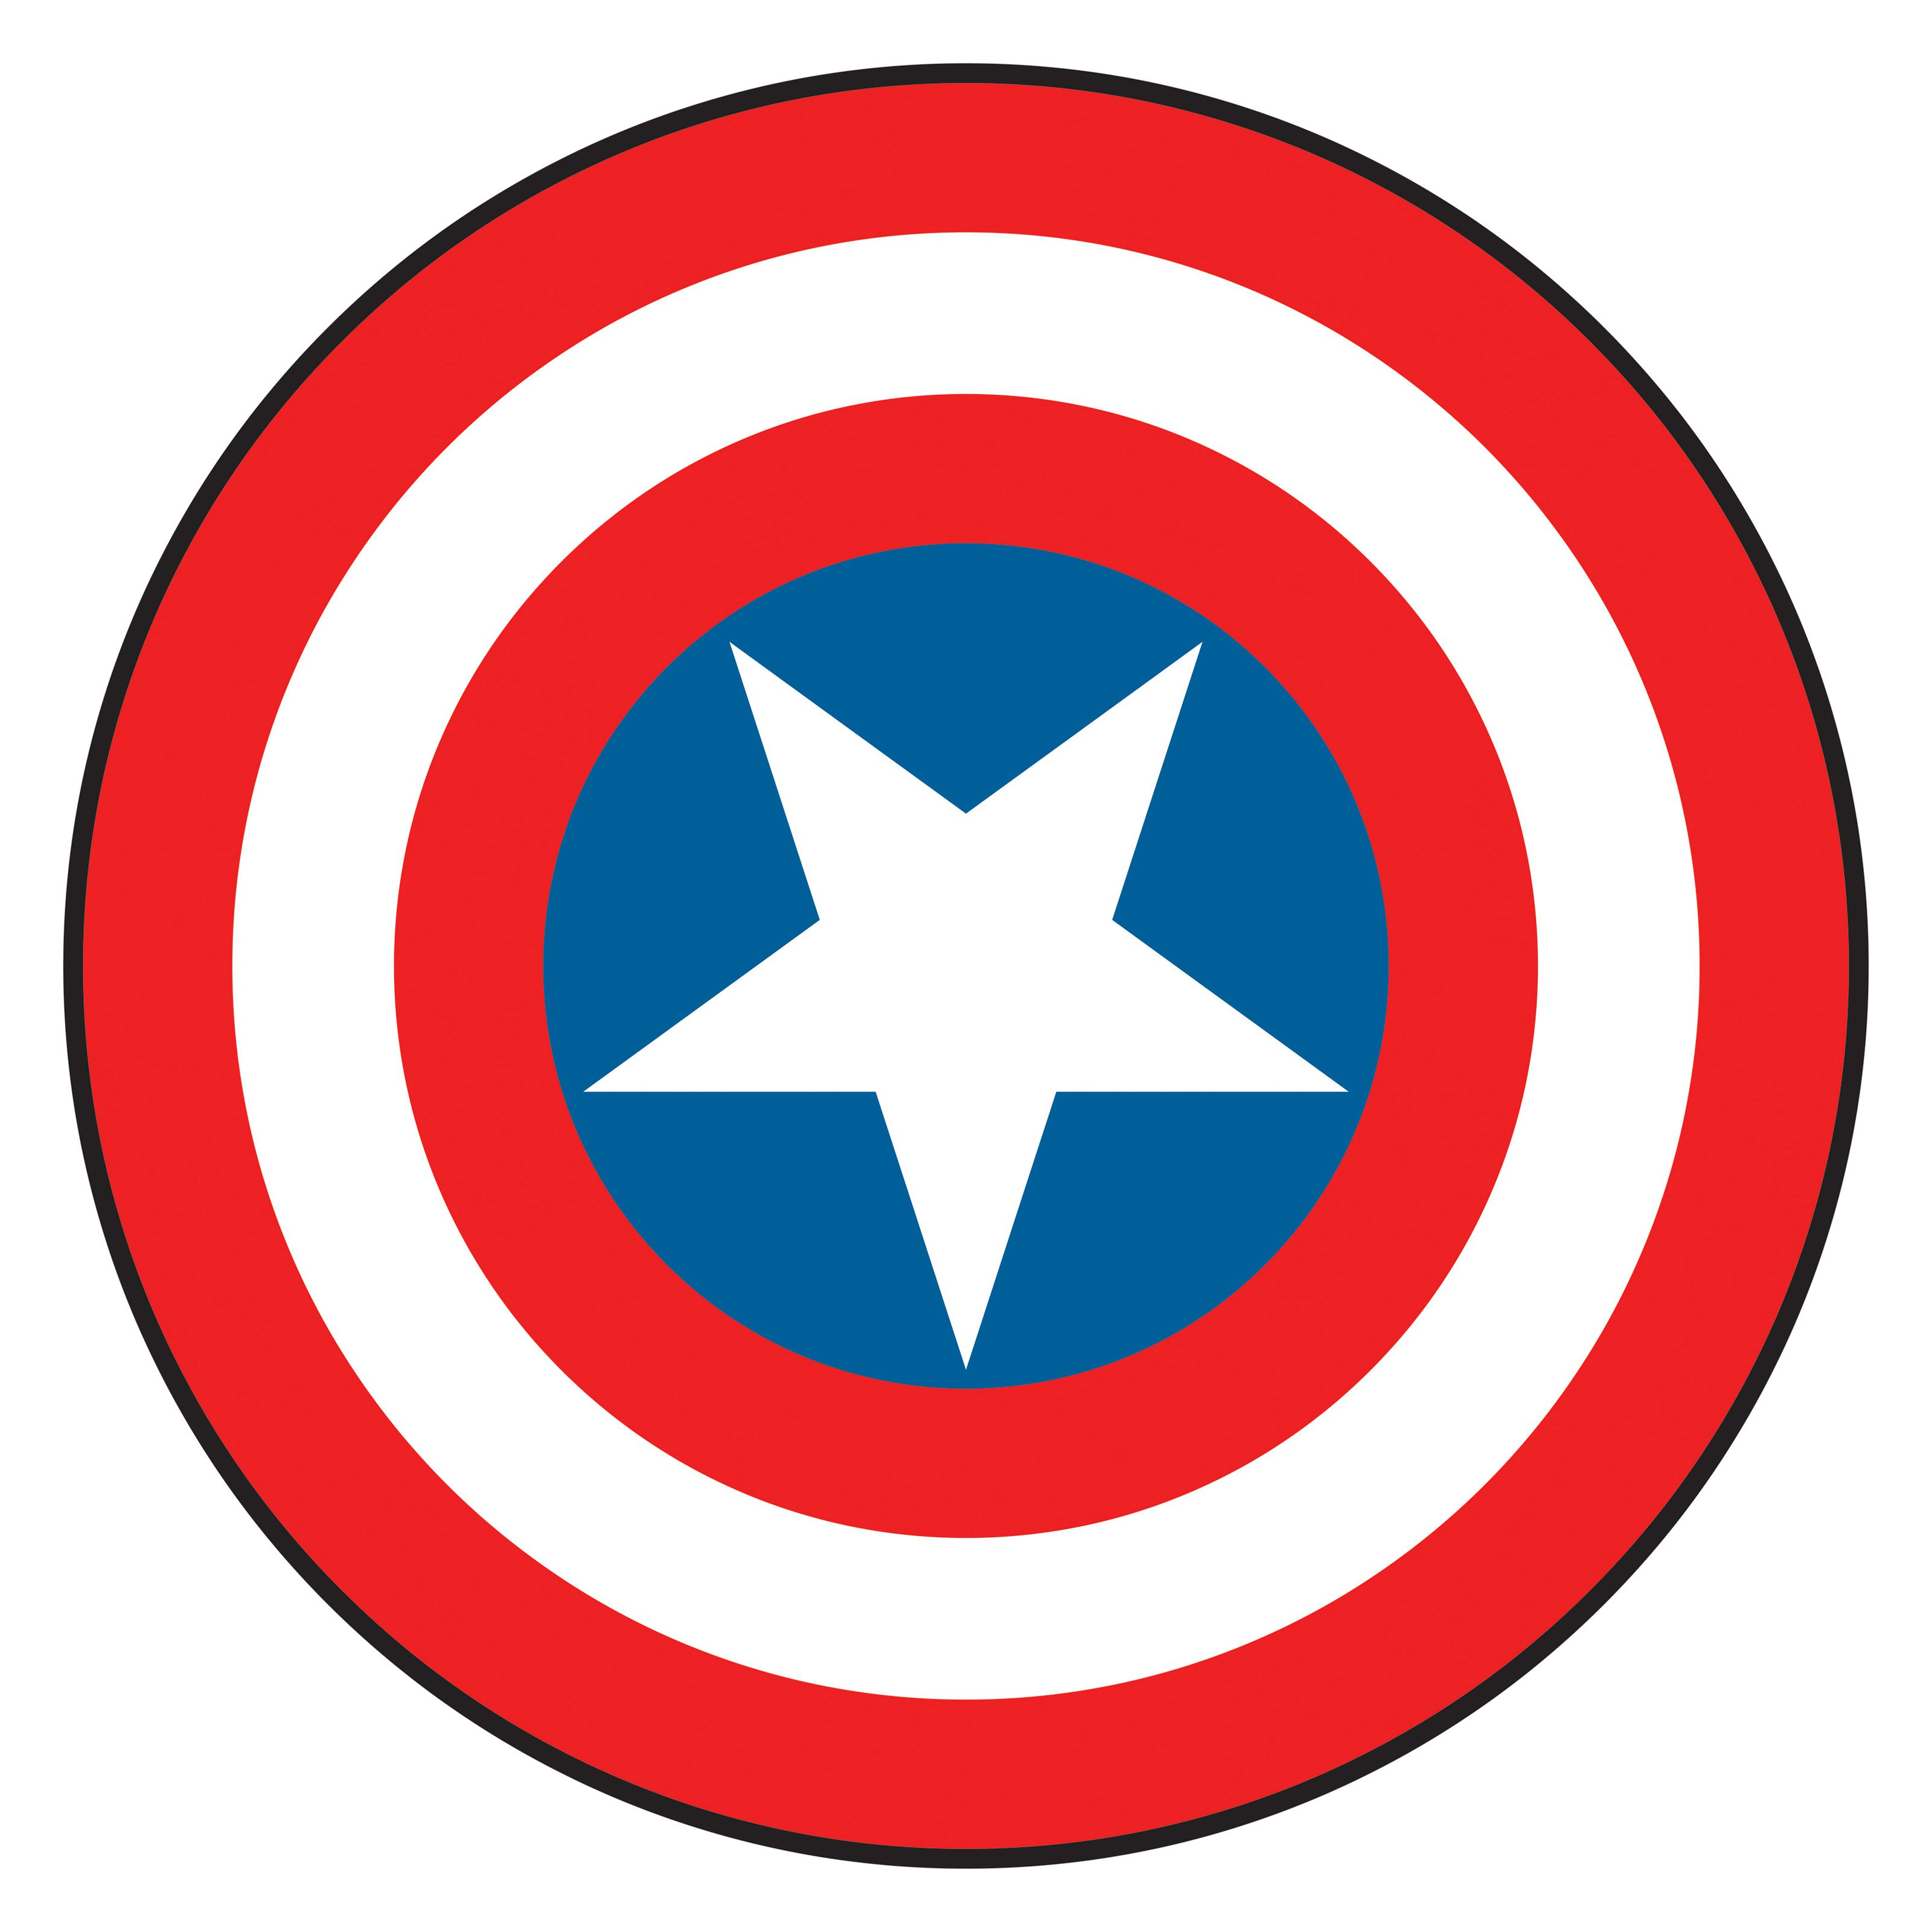 captain america logo free transparent png logos captain america logo free transparent